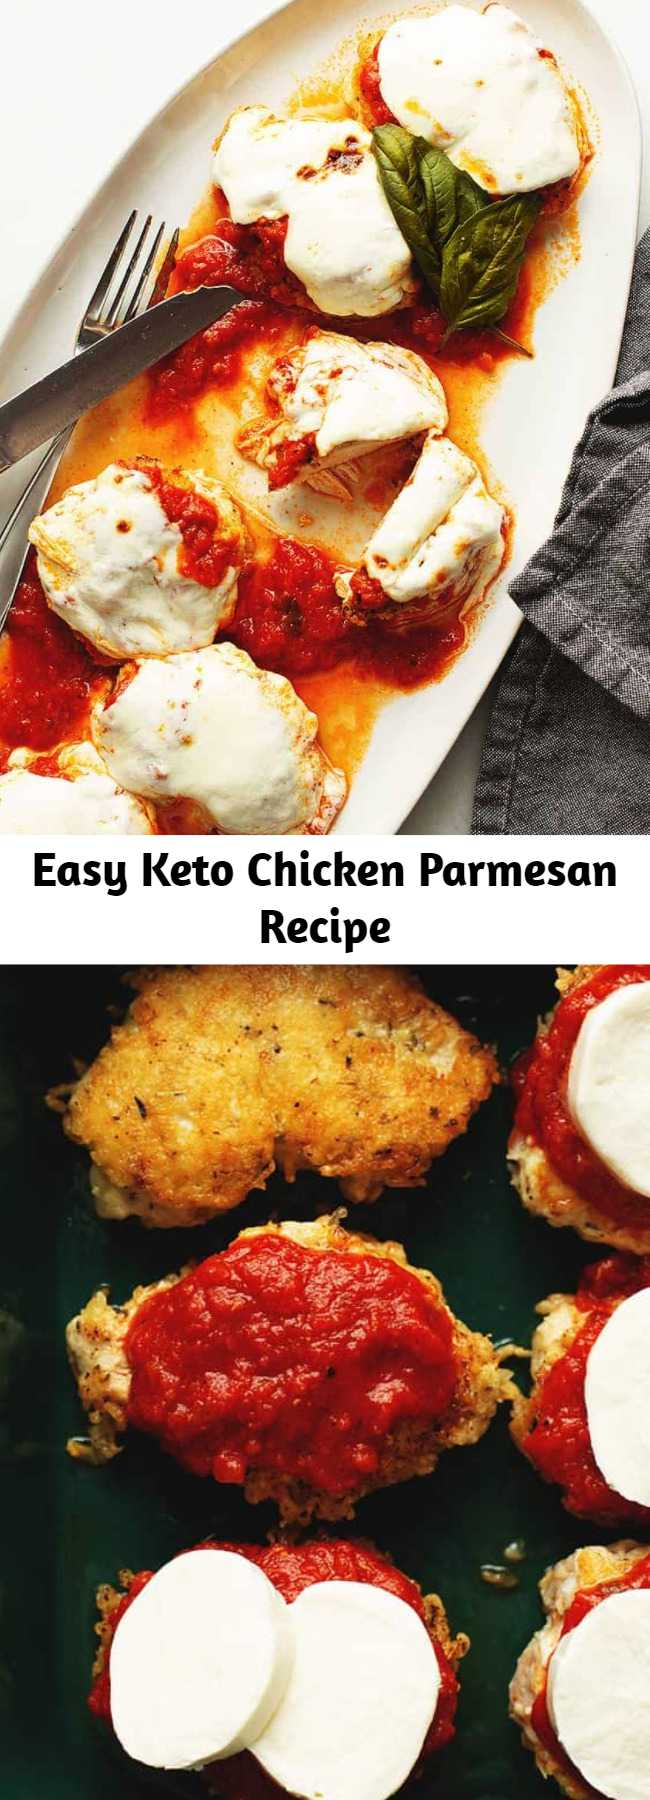 Easy Keto Chicken Parmesan Recipe - Keto chicken parmesan is a quick, easy, and delicious recipe to make for dinner. Thin chicken breasts are crusted in parmesan cheese, pan fried until golden brown, then topped with marinara and melty mozzarella cheese!